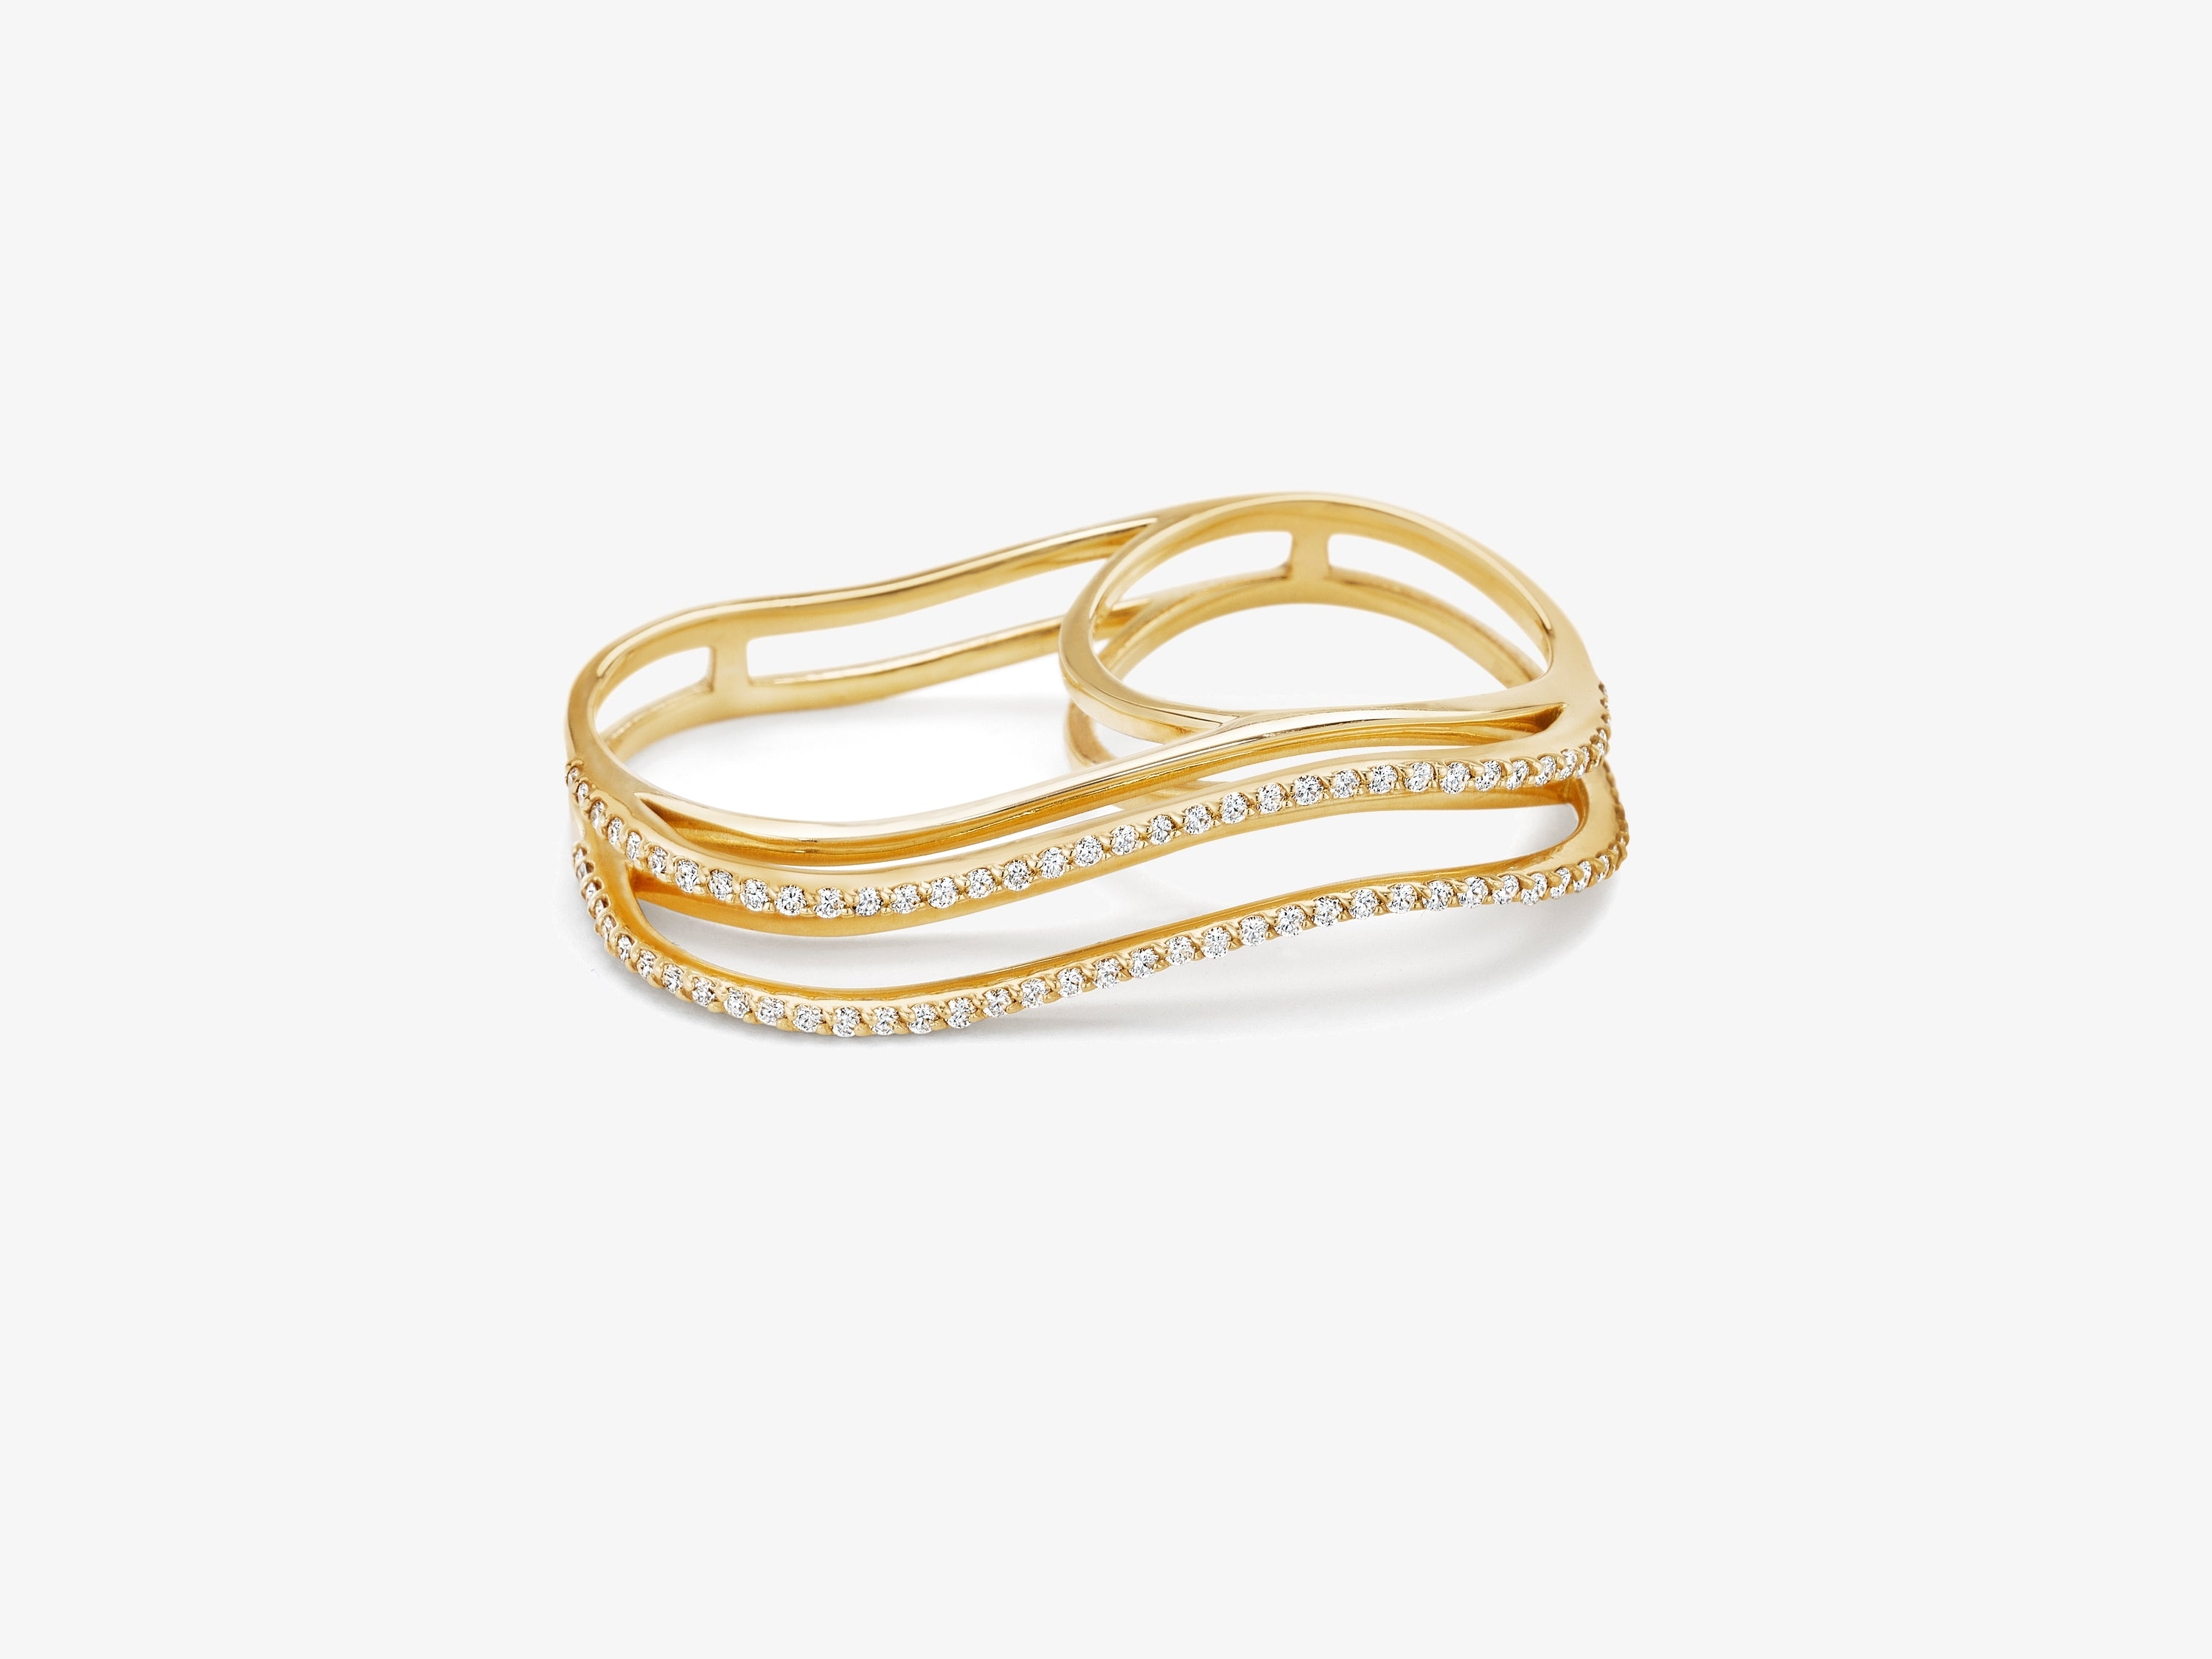 Three Dimensional Wavy Double Finger Ring with Full Diamond Pave